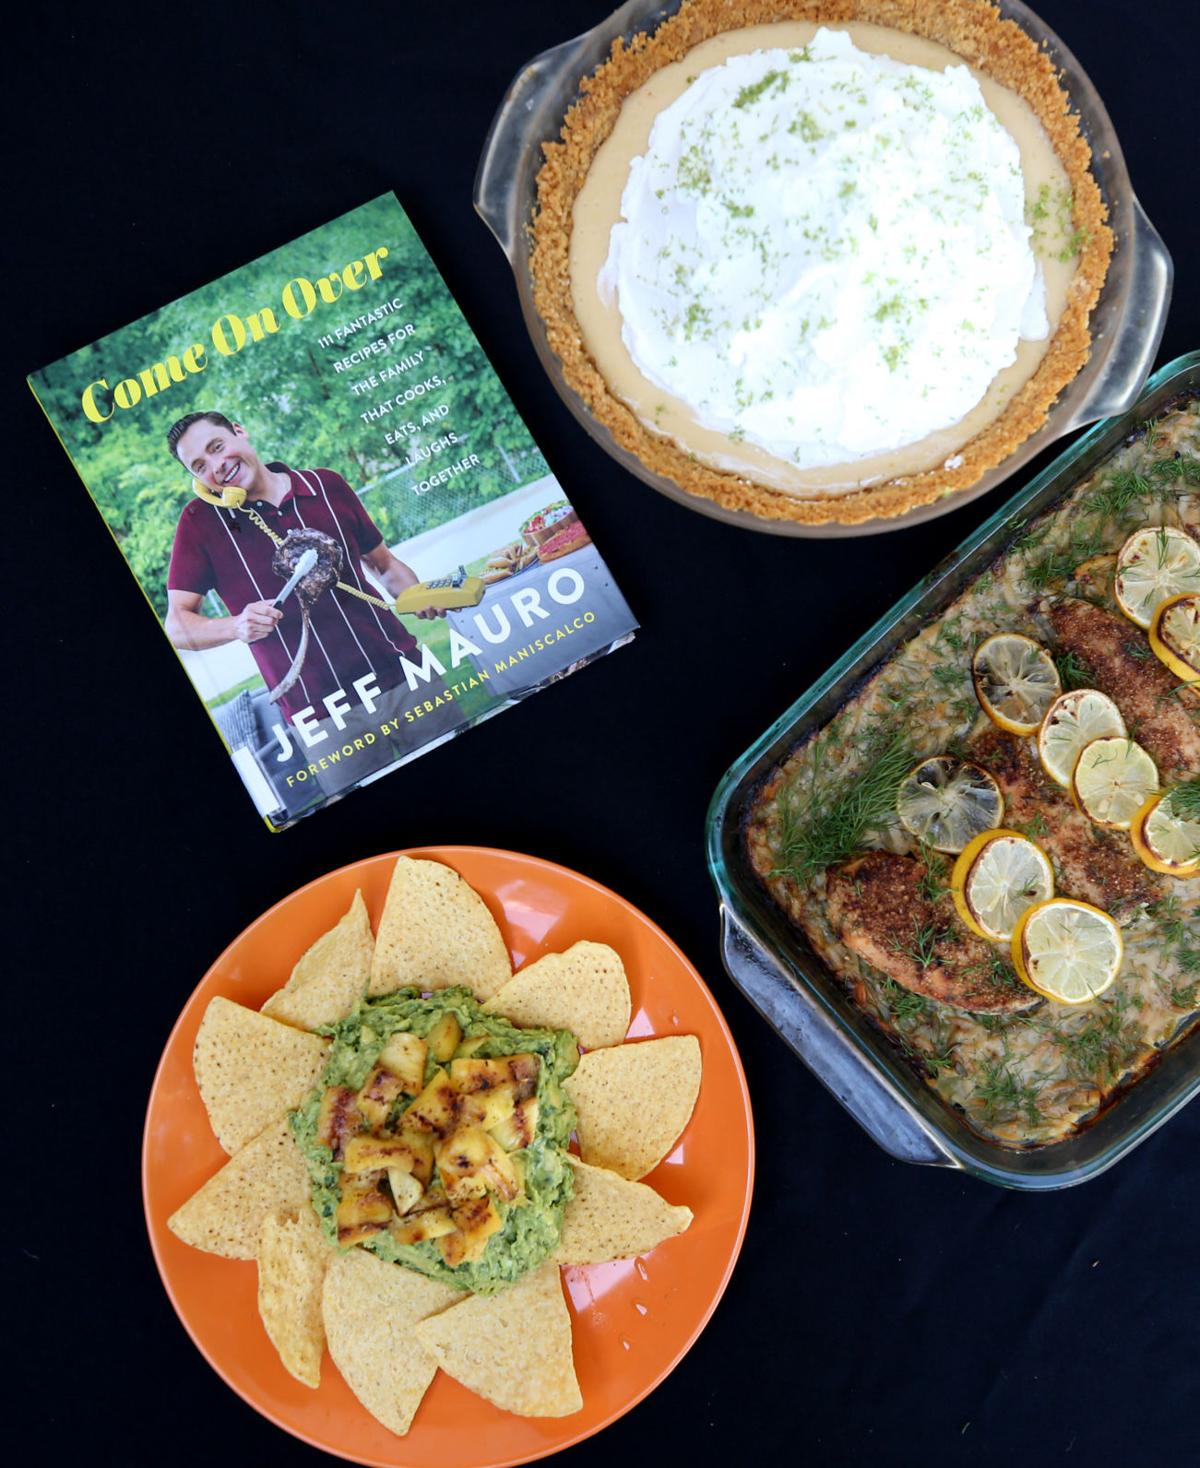 Jeff Mauro's cookbook re-creates recipes, fun from family gatherings